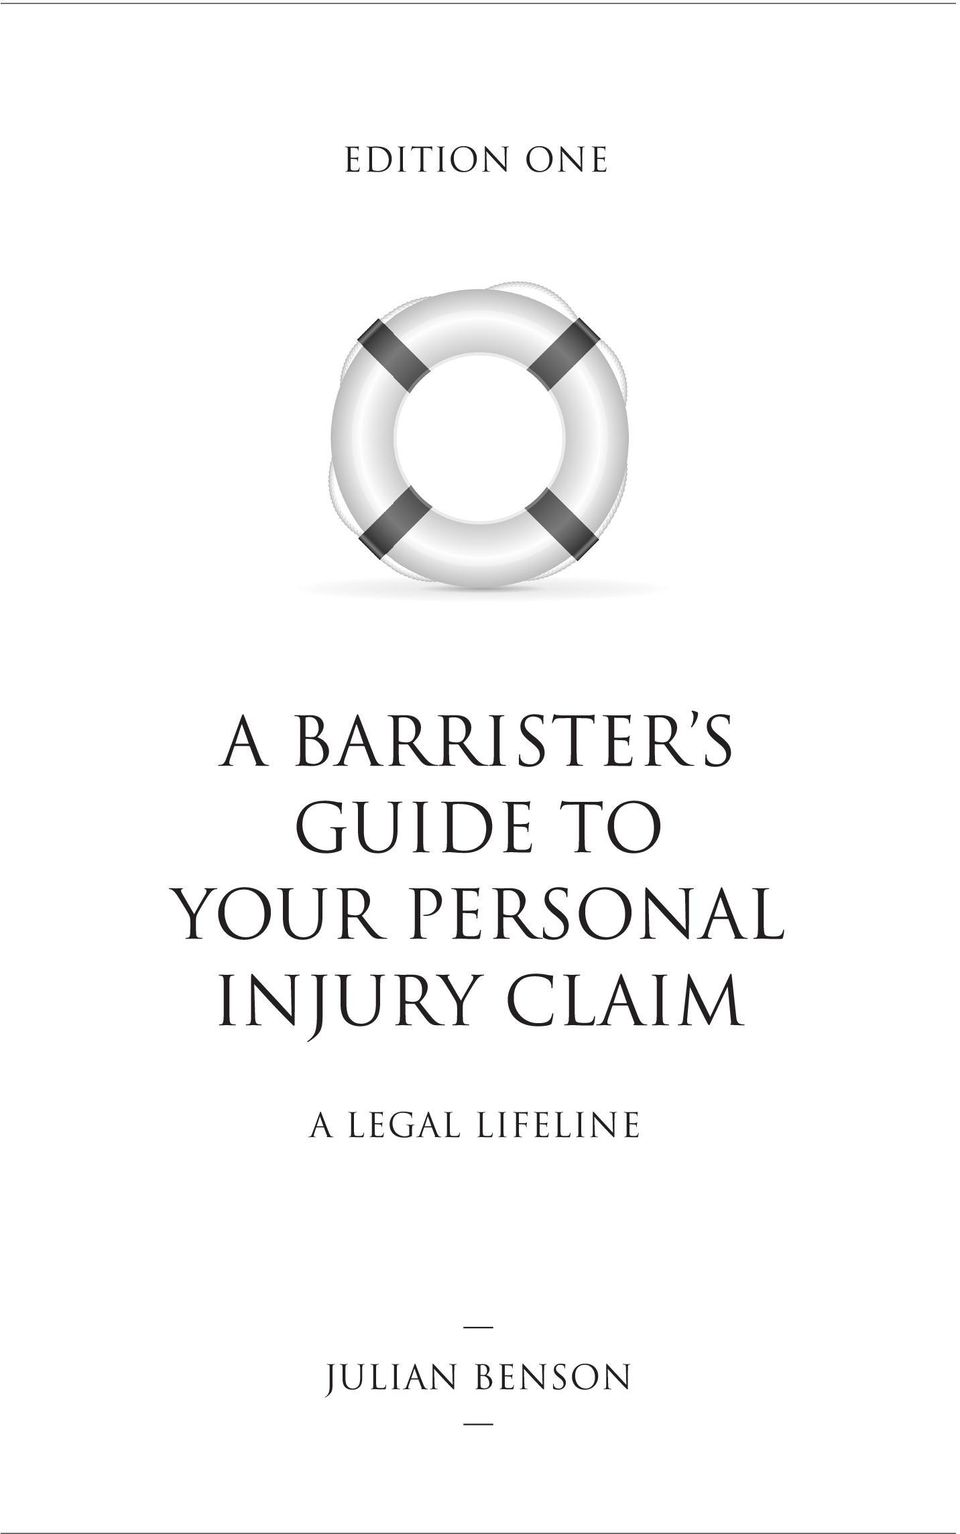 YOUR PERSONAL INJURY